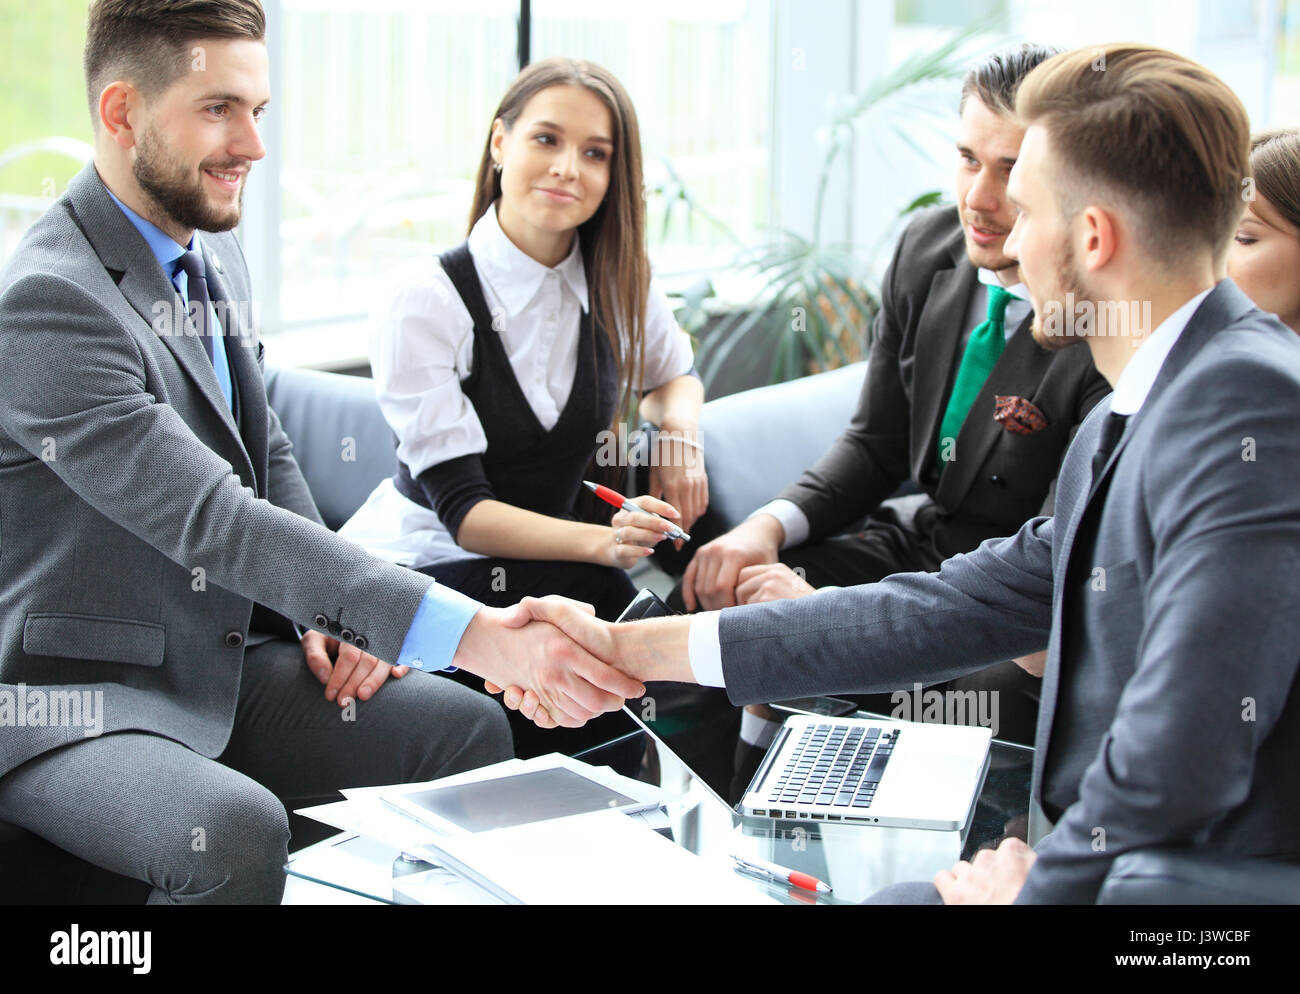 Business people shaking hands, finishing up a meeting. - Stock Image